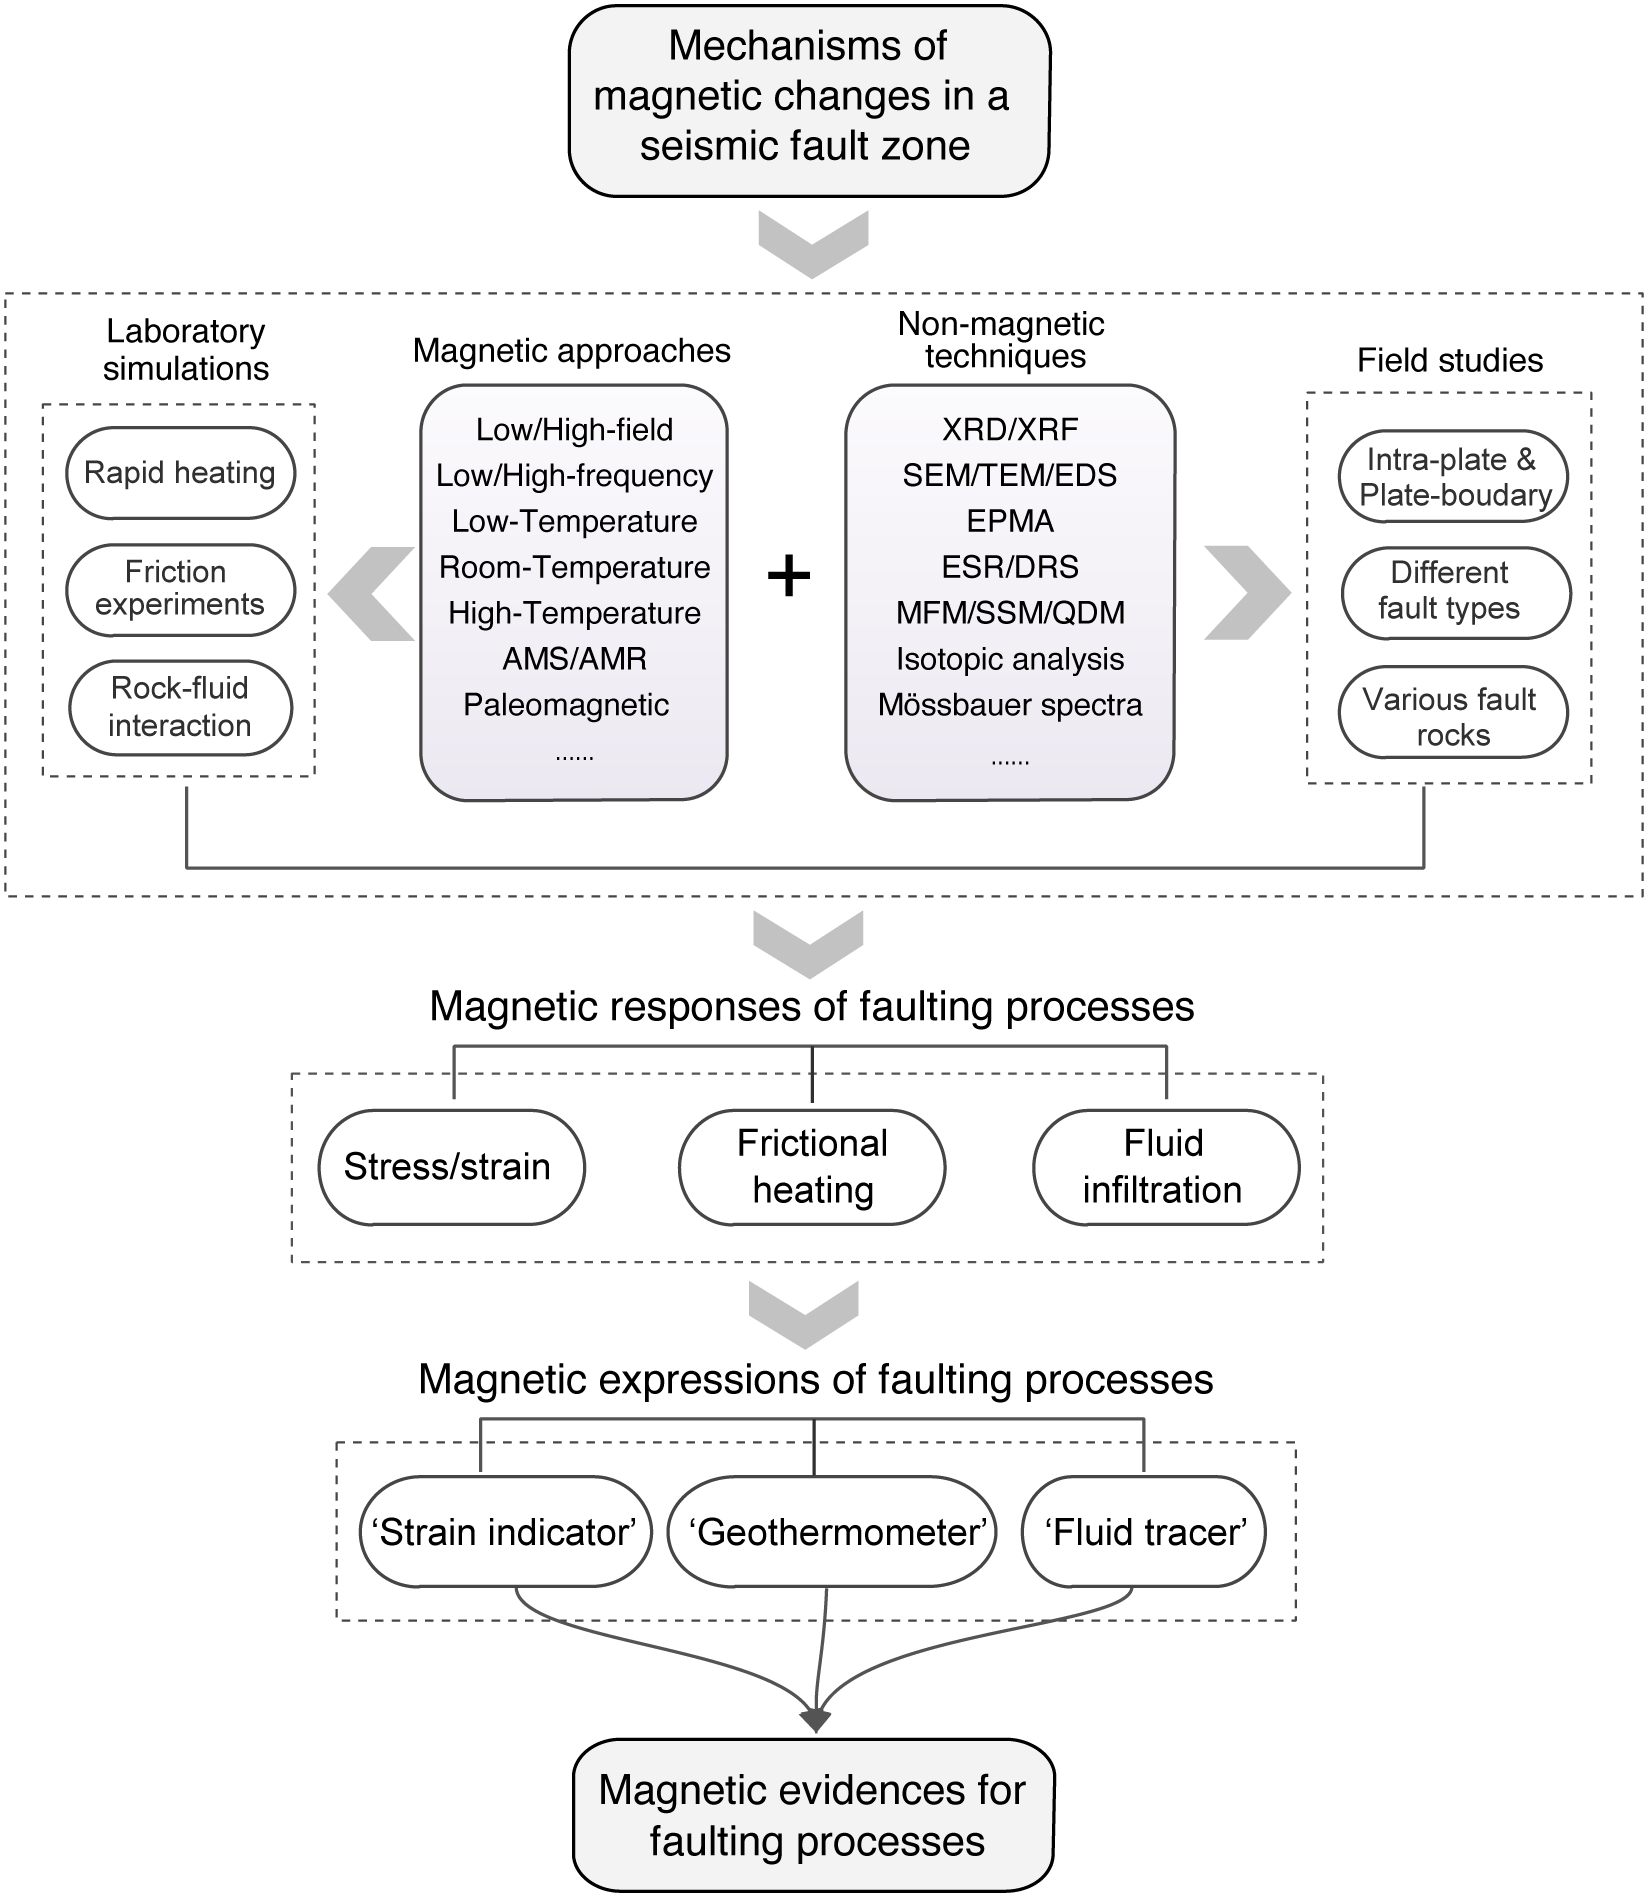 Flow chart suggesting multidisciplinary and integrated approaches as a most promising way to gain a full appreciation of the magnetic response to dynamic physicochemical processes in fault zones.